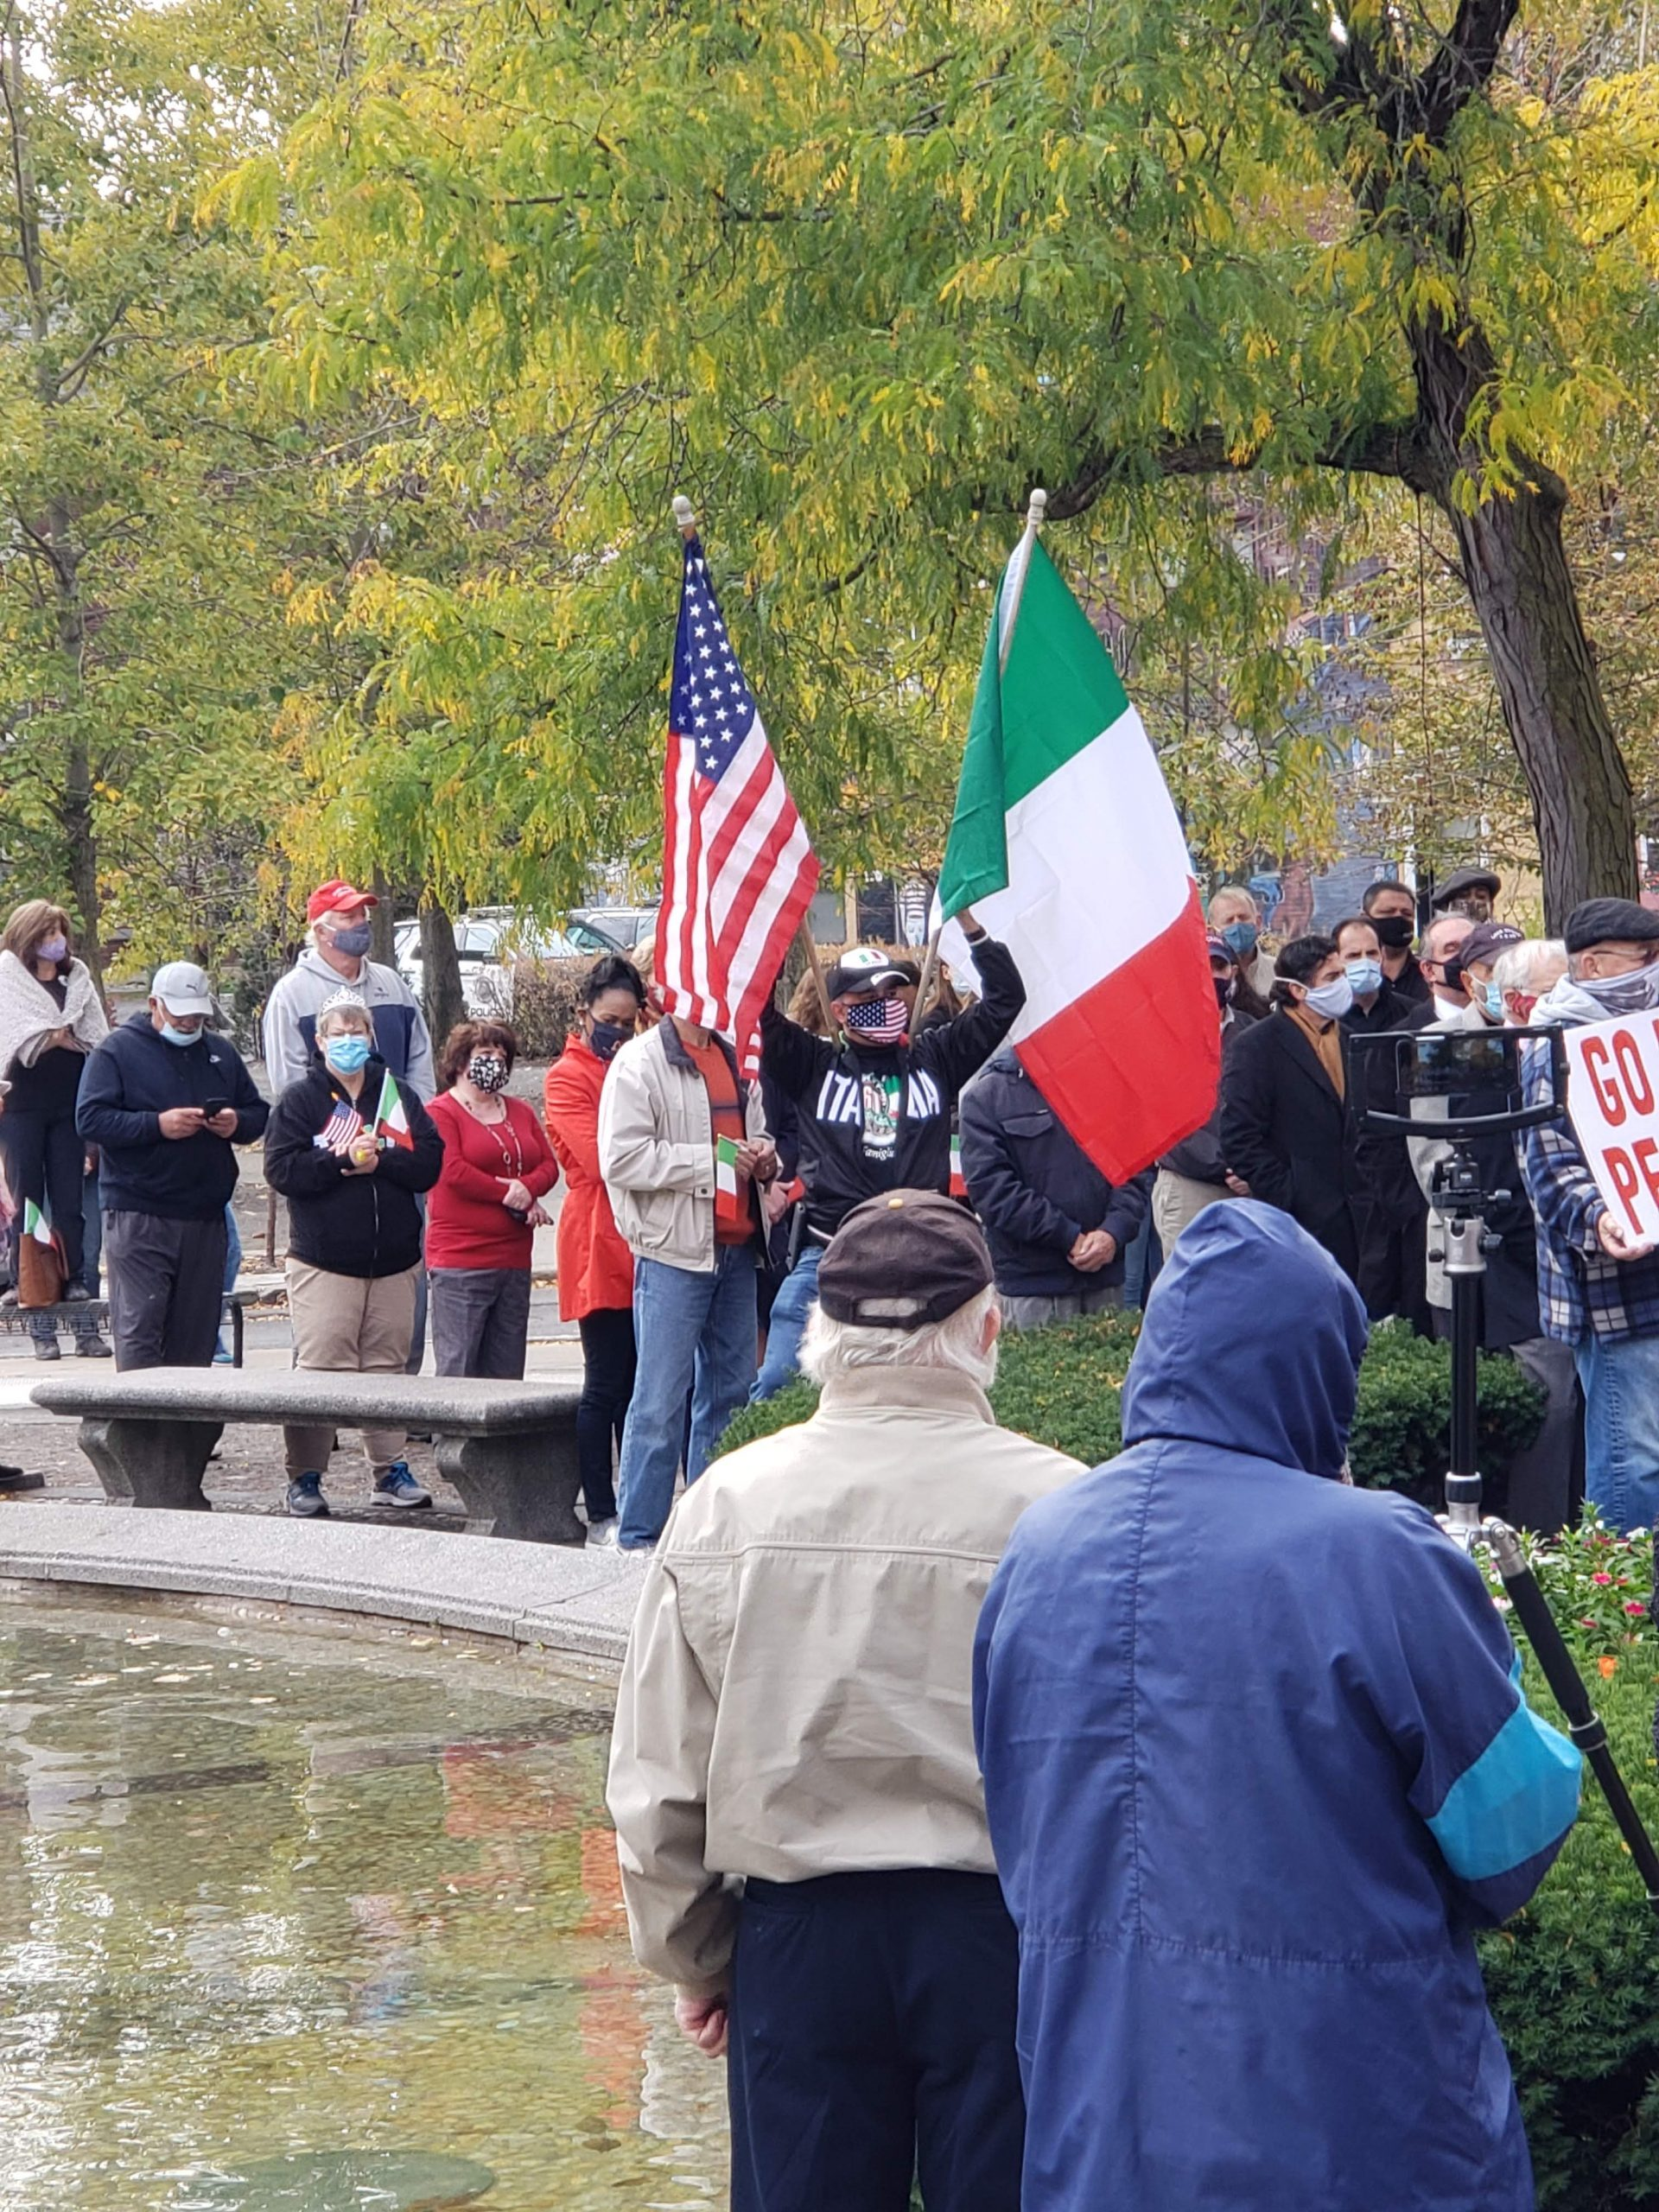 Italian-Americans protested against Mayor Walsh's decision to remove the Christopher Columbus statute at the annual wreath laying ceremony in 2020.